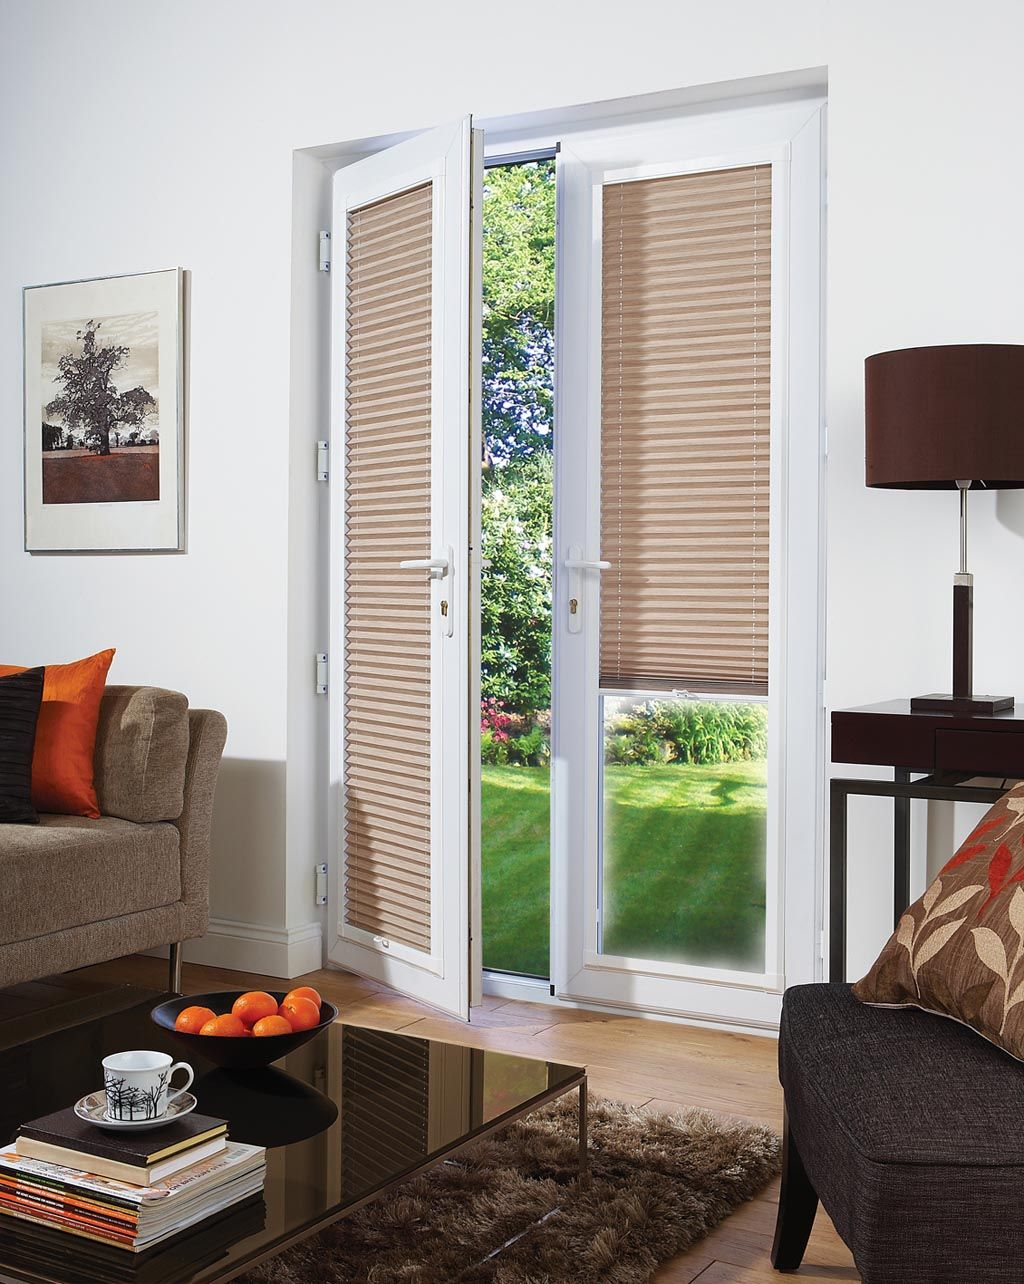 Magnetic Blinds For Doors With Windows Window Blinds In